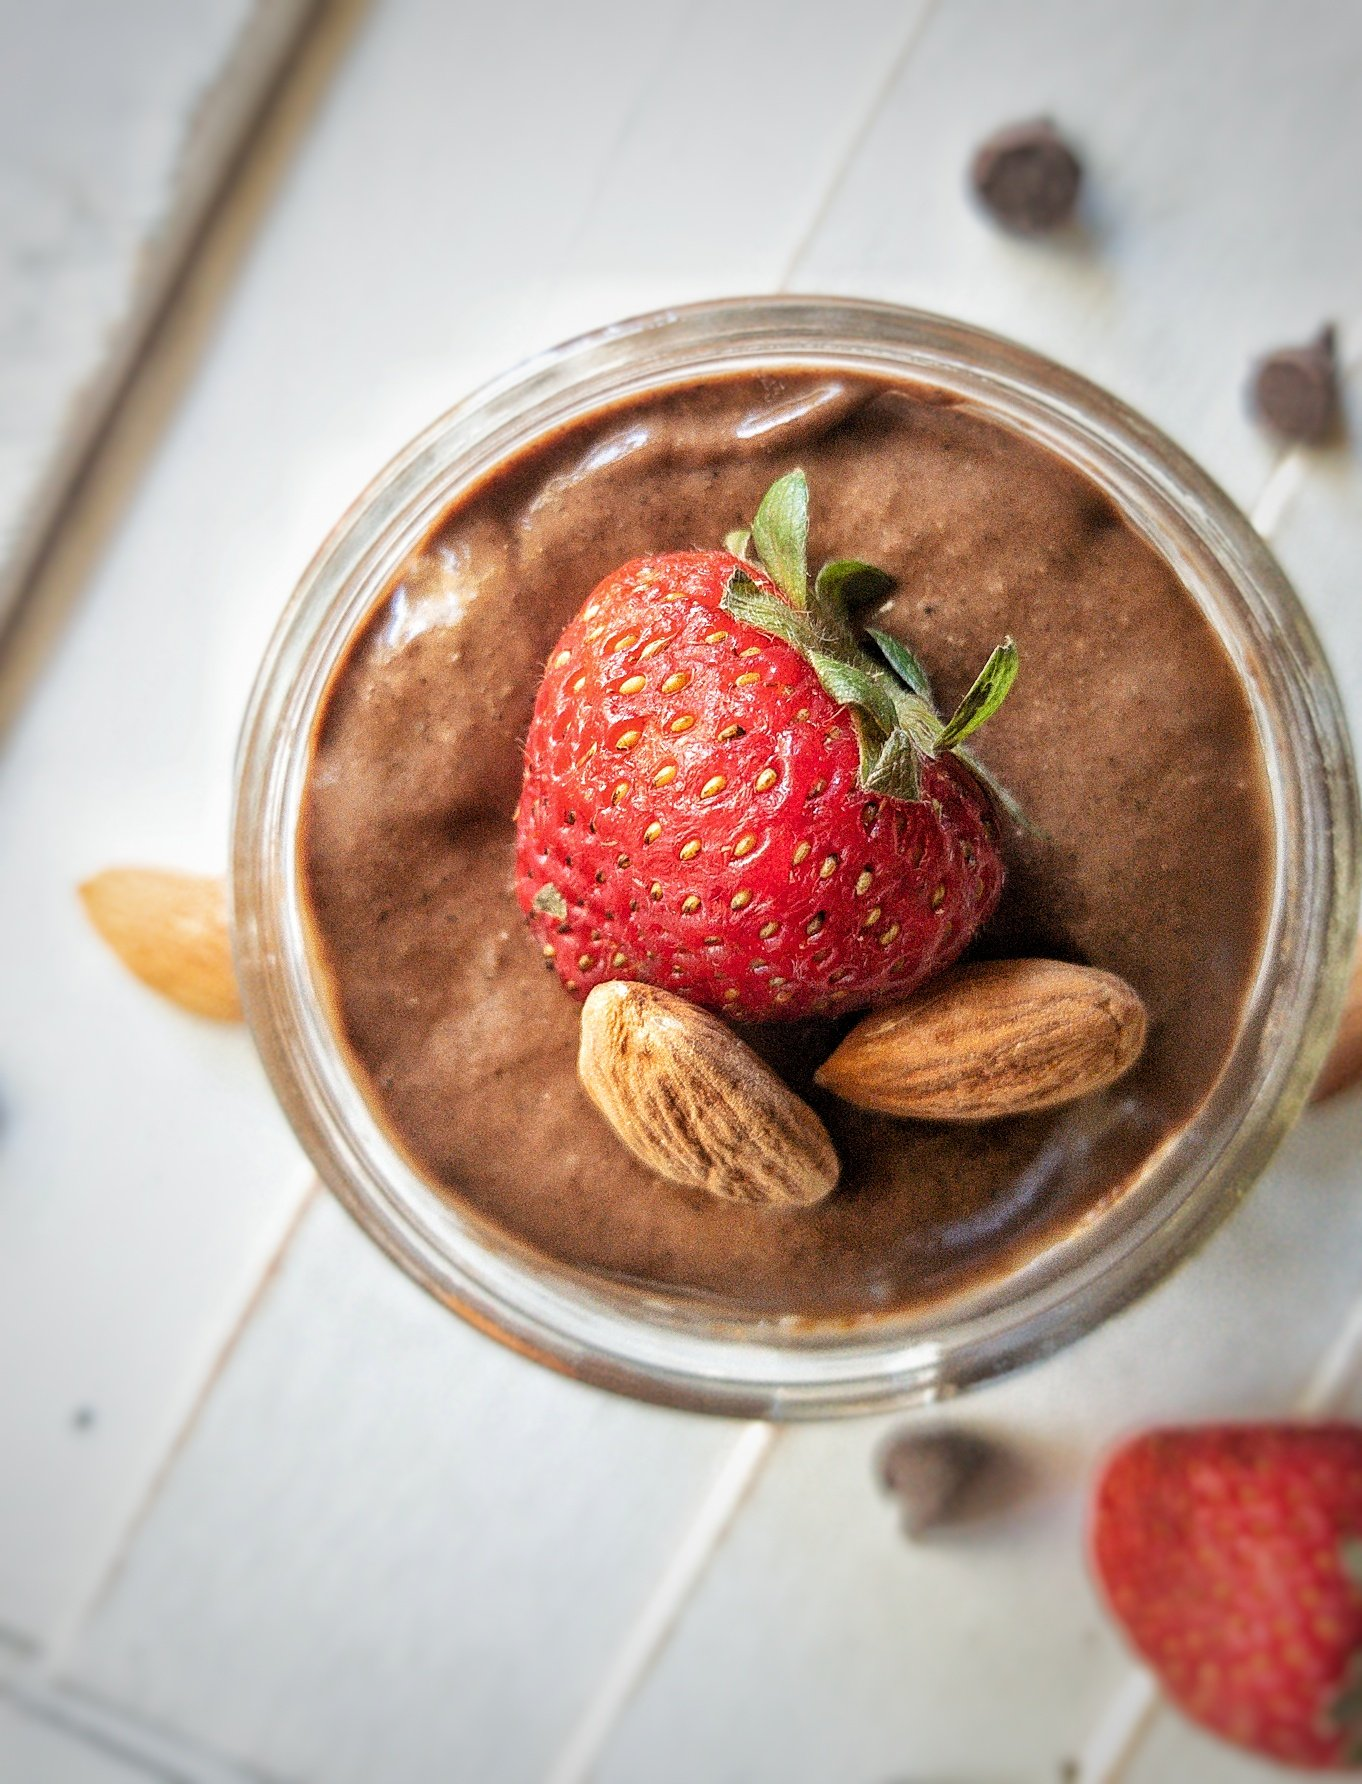 Chia see pudding made with cocoa powder and plant-based ingredients.